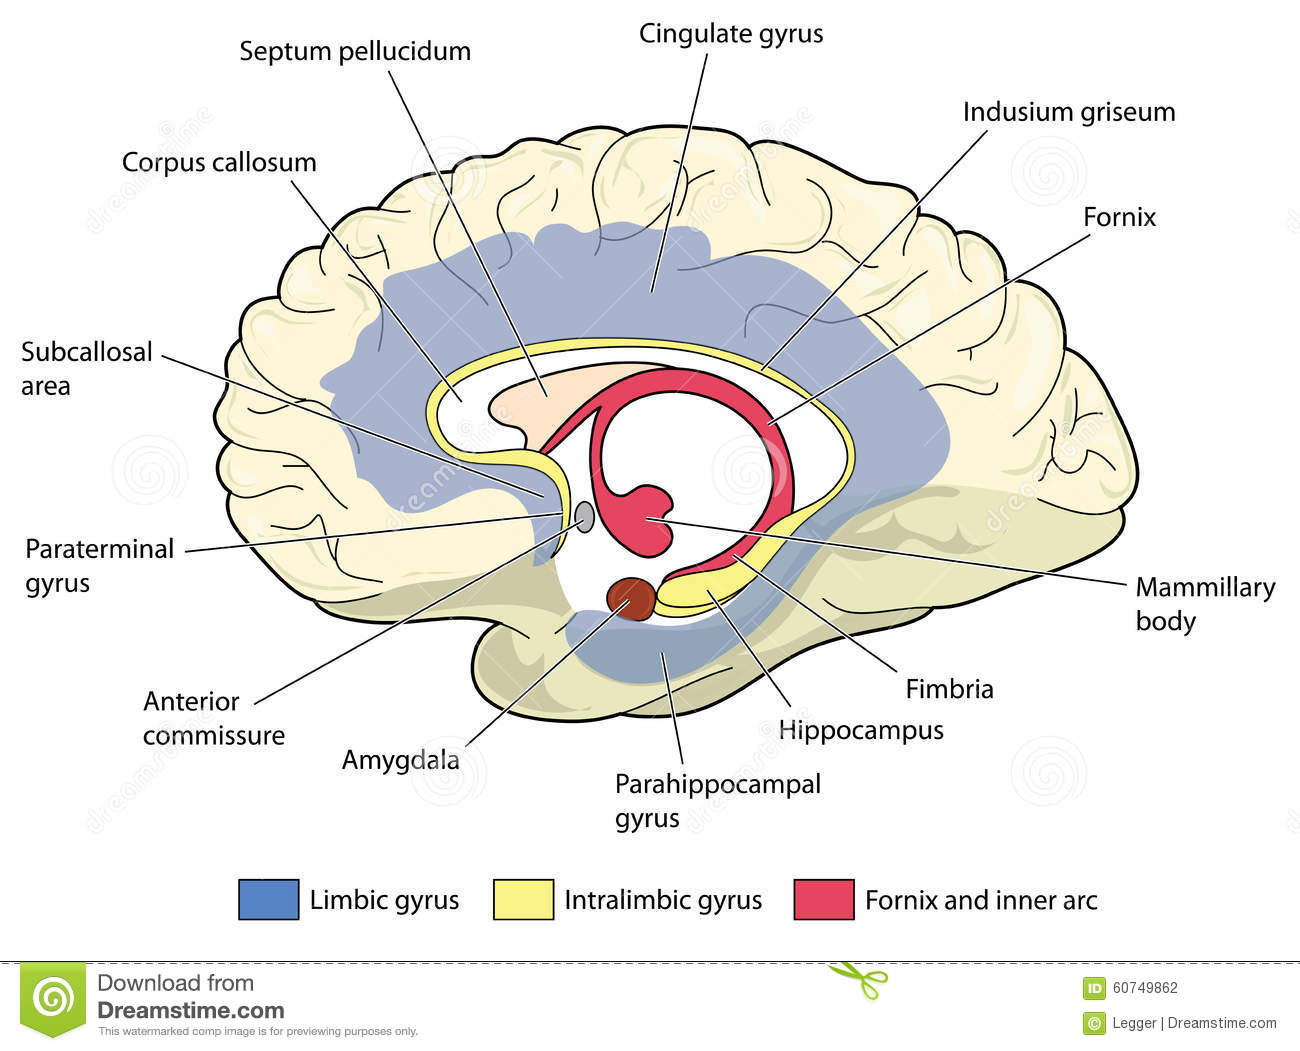 Perfect Anatomy Corpus Callosum Image Collection - Anatomy and ...